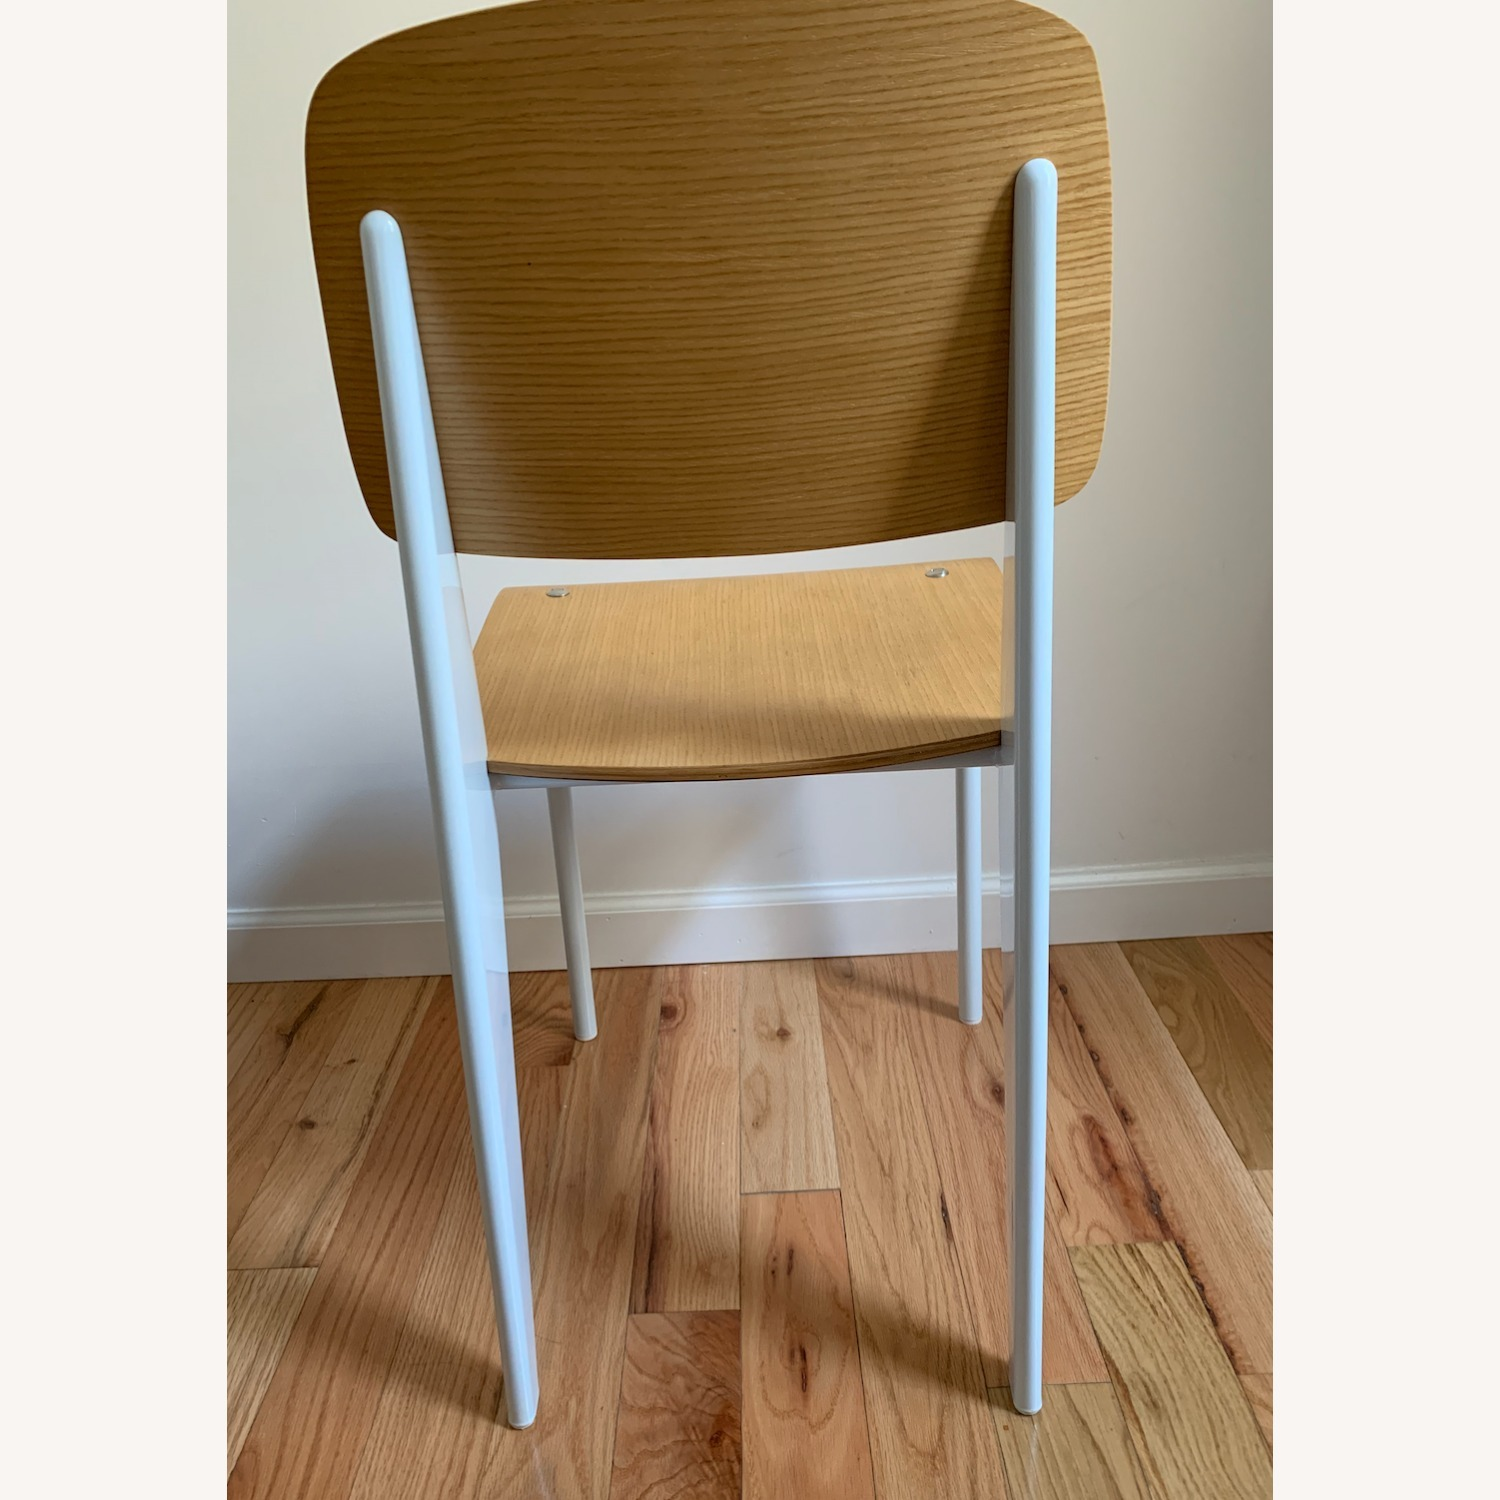 Jean Prouve Style Chair in Natural White - image-4